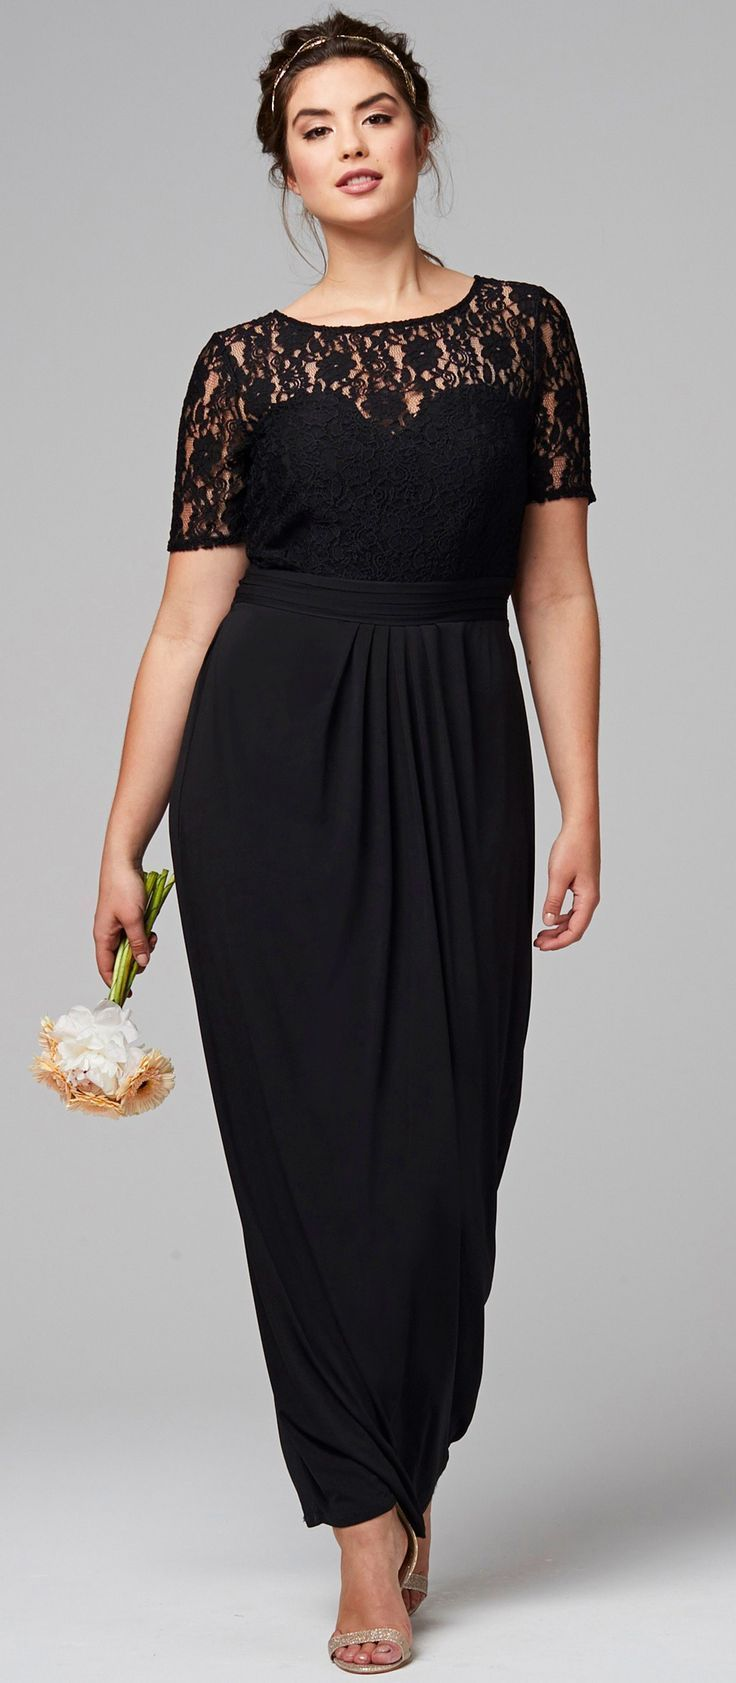 a4cb5823e2b1 45 Plus Size Wedding Guest Dresses  with Sleeves  - Plus Size Cocktail  Dresses - alexawebb.com